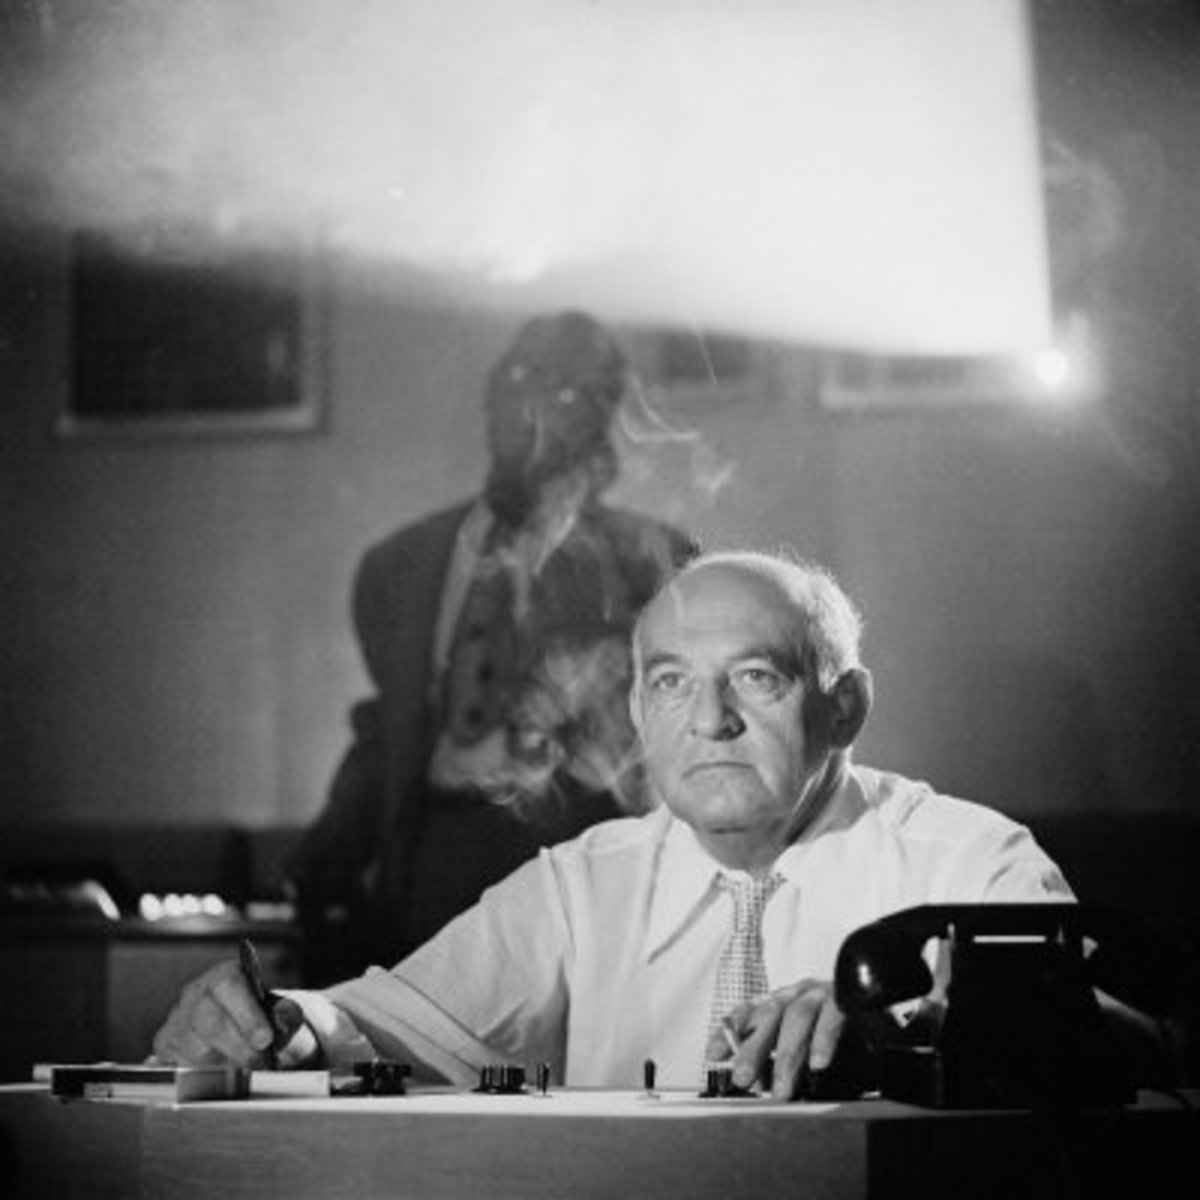 Harry Cohn in Screening Room